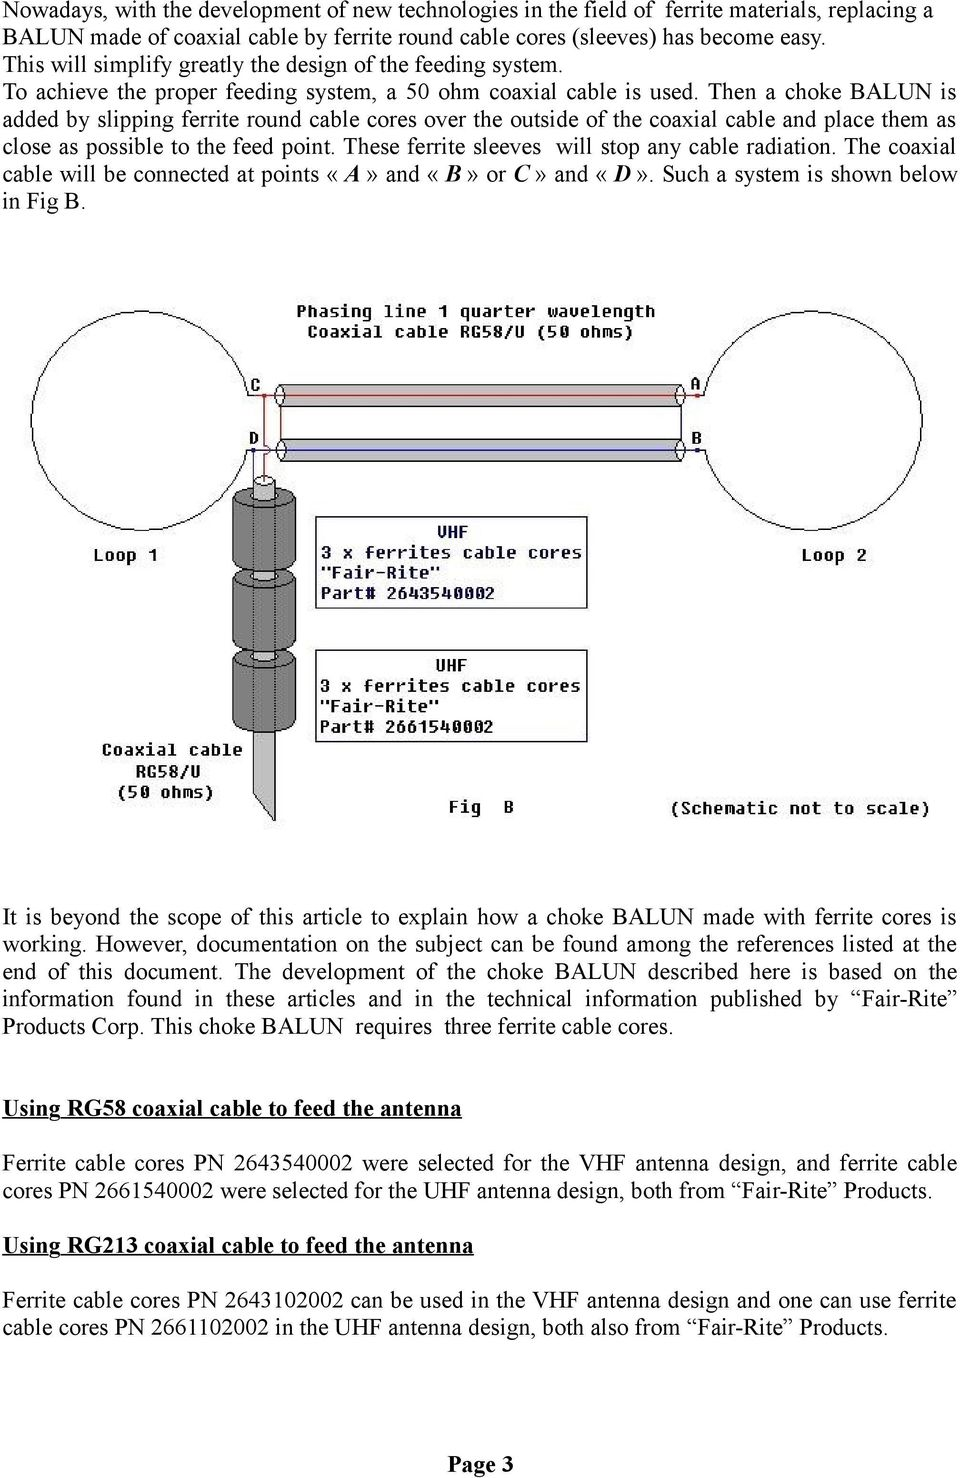 The Vhf Uhf Eggbeater Antenna Revisited Pdf Coax Cable Schematic Then A Choke Balun Is Added By Slipping Ferrite Round Cores Over Outside Of